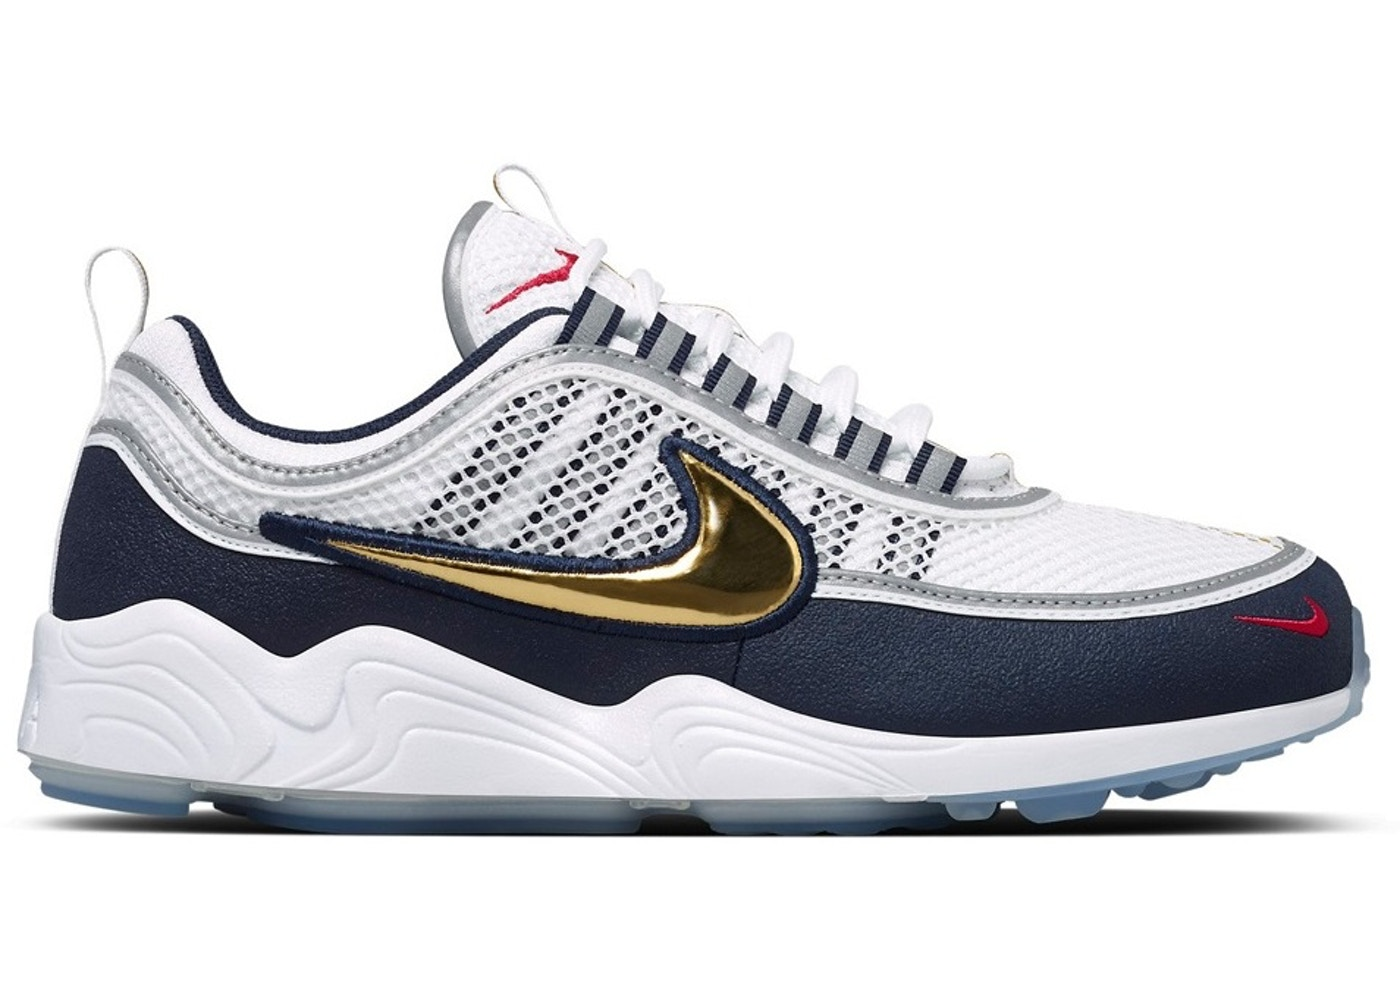 5a24d0cc3296 Air Zoom Spiridon Olympic